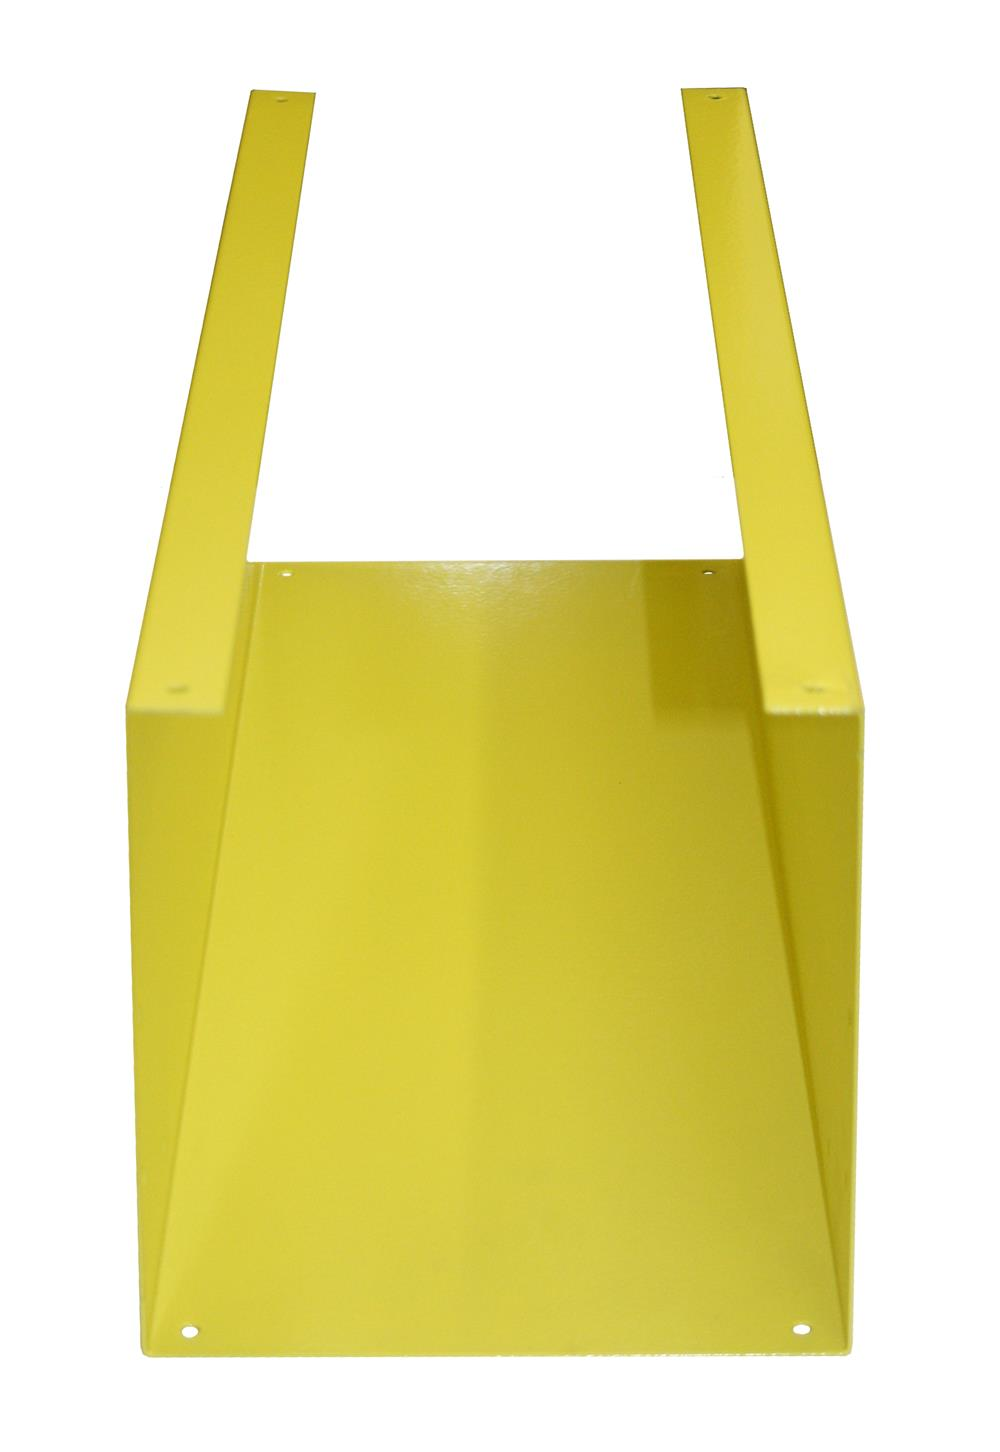 Steel QUIC-STORAGE Rack – Box Only – Yellow